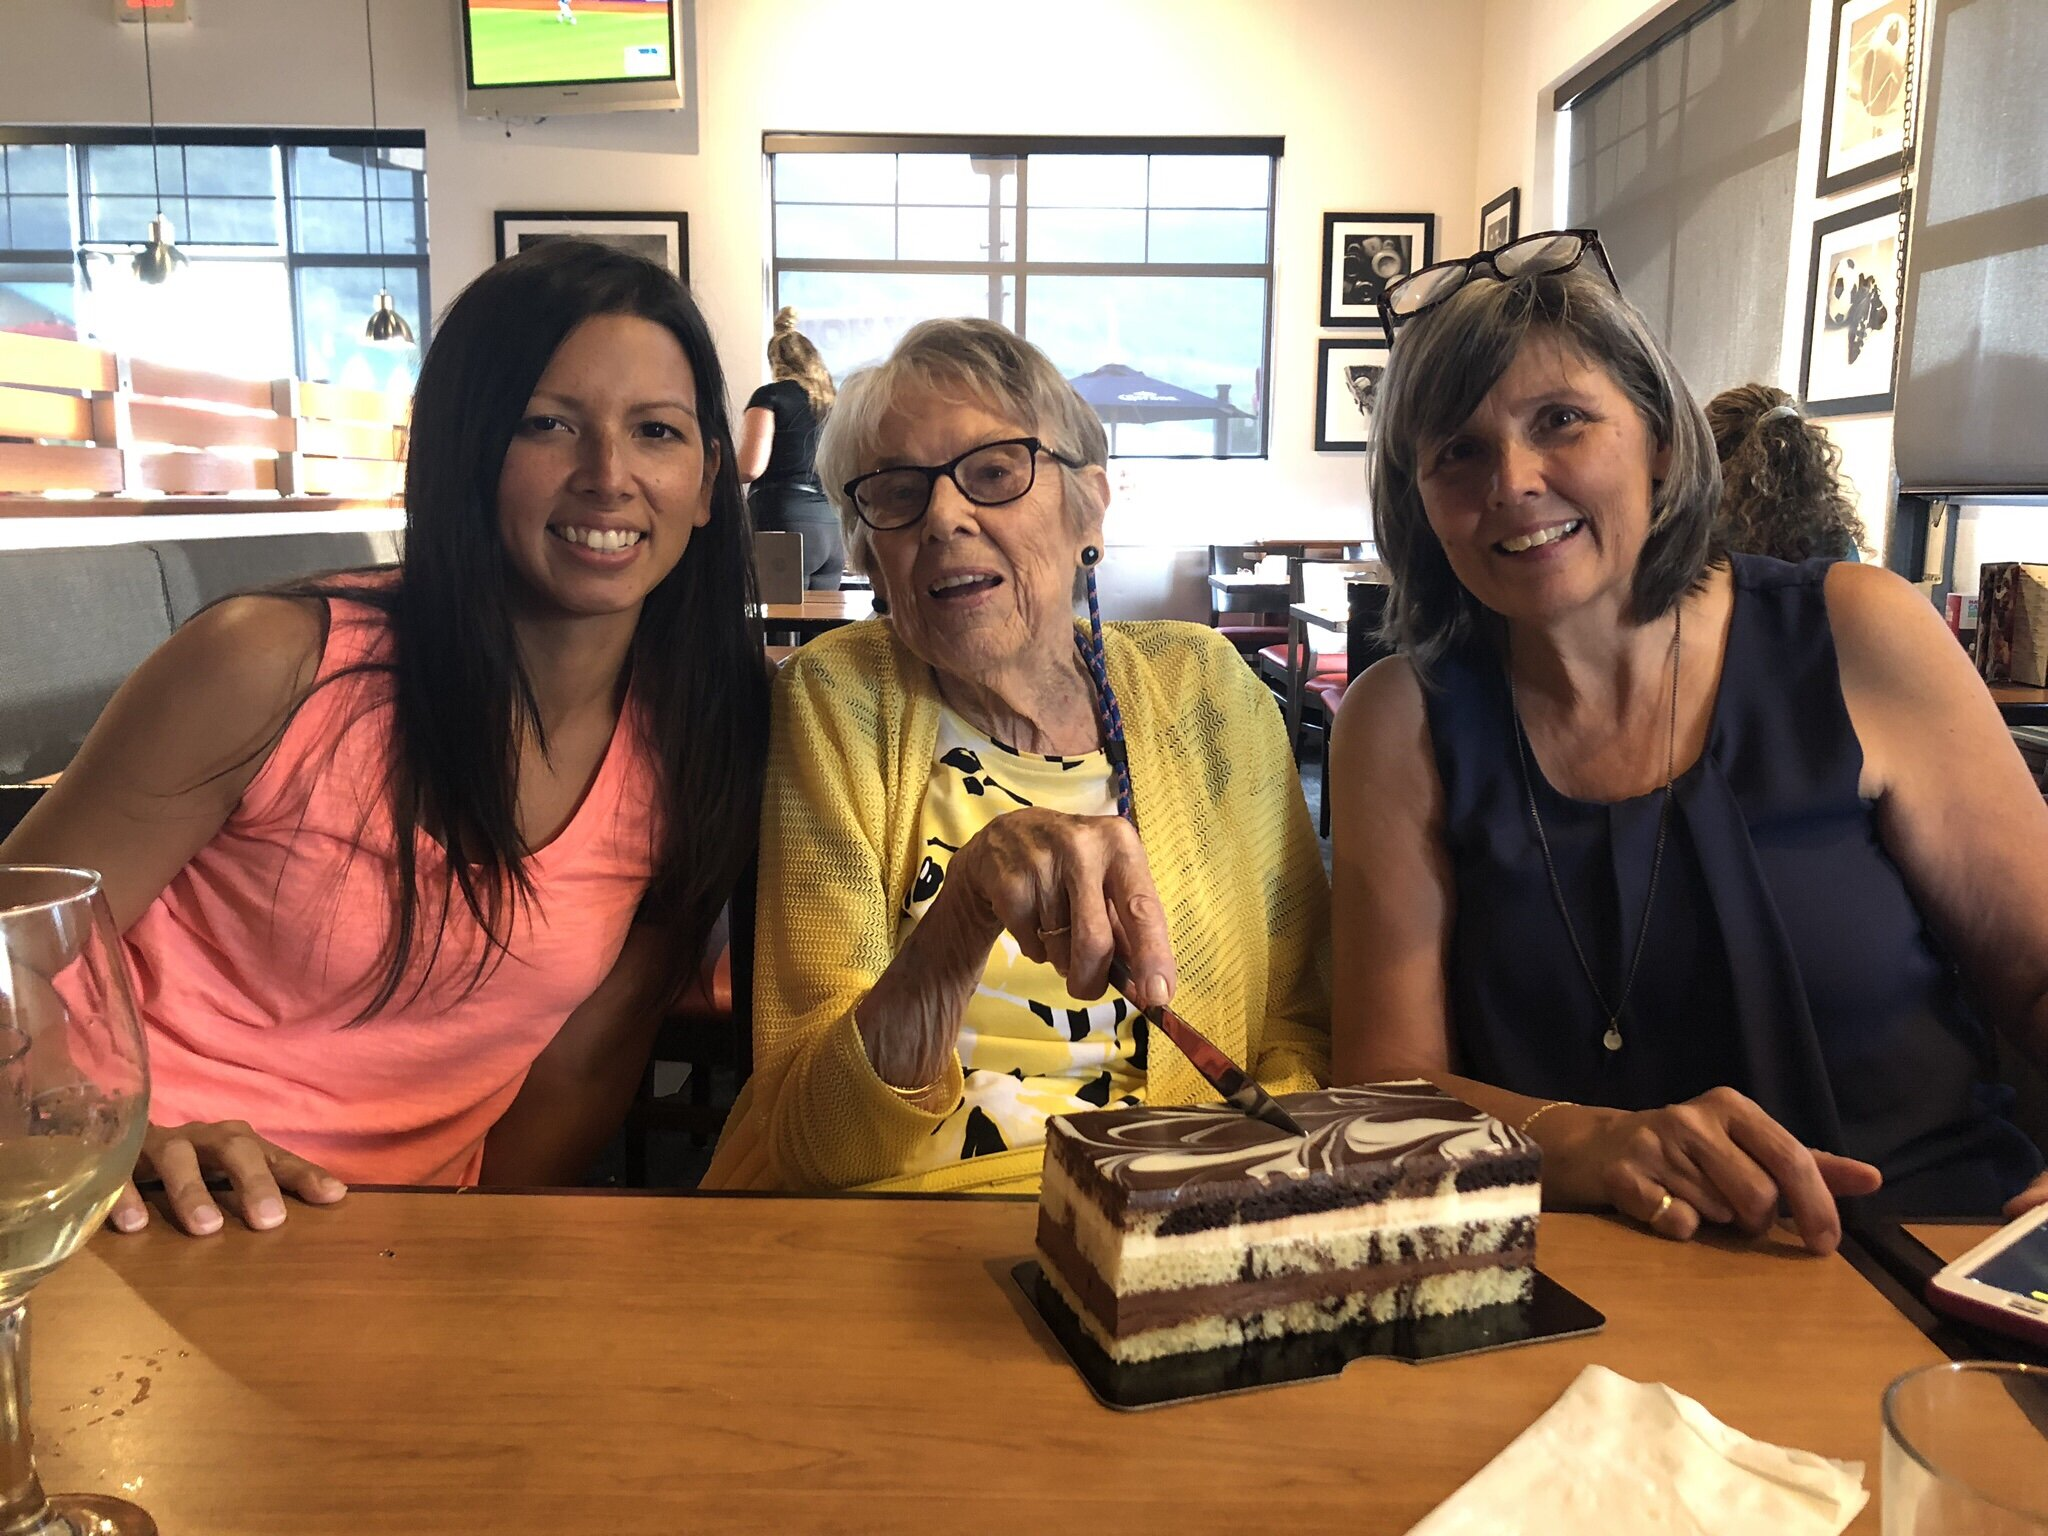 Celebrating Grandma's (mom's mom's) 93rd birthday in August 2019. She is a breast cancer SURVIVOR still going strong!